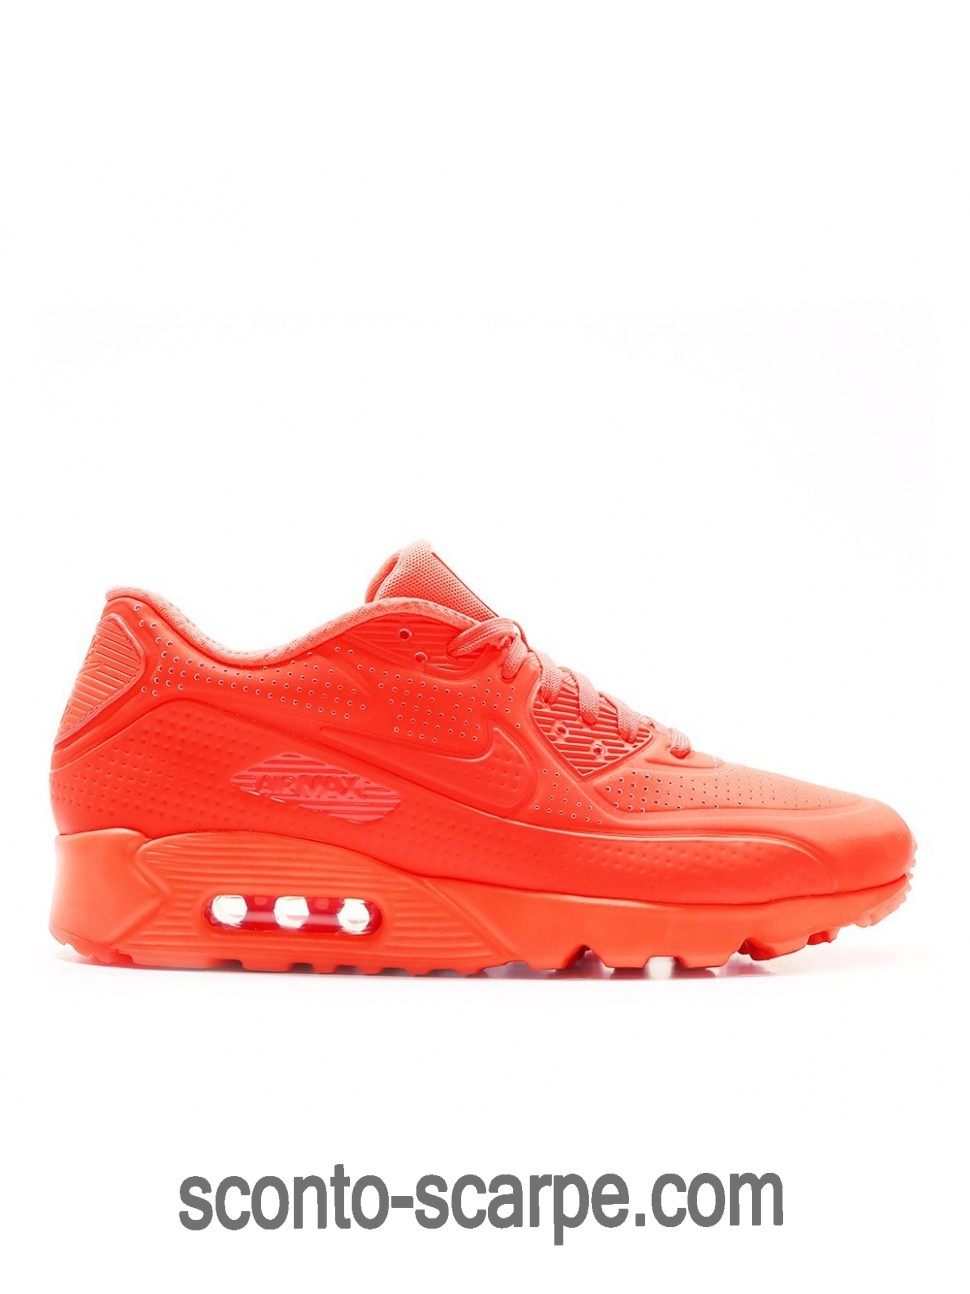 Nike Air Max 90 Ultra Moire Neon Luminoso Cremisi 819477-600 48% Spento